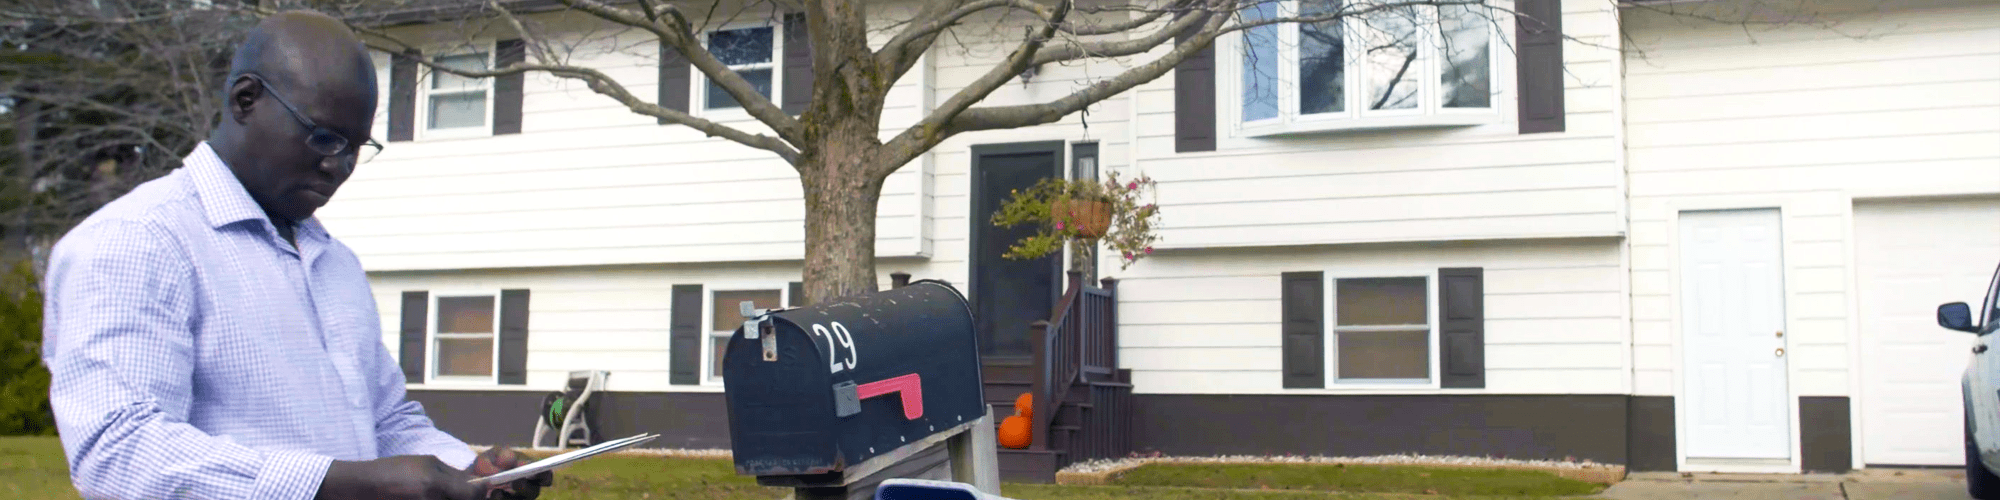 A man in front of his home, checking his mail at the mailbox